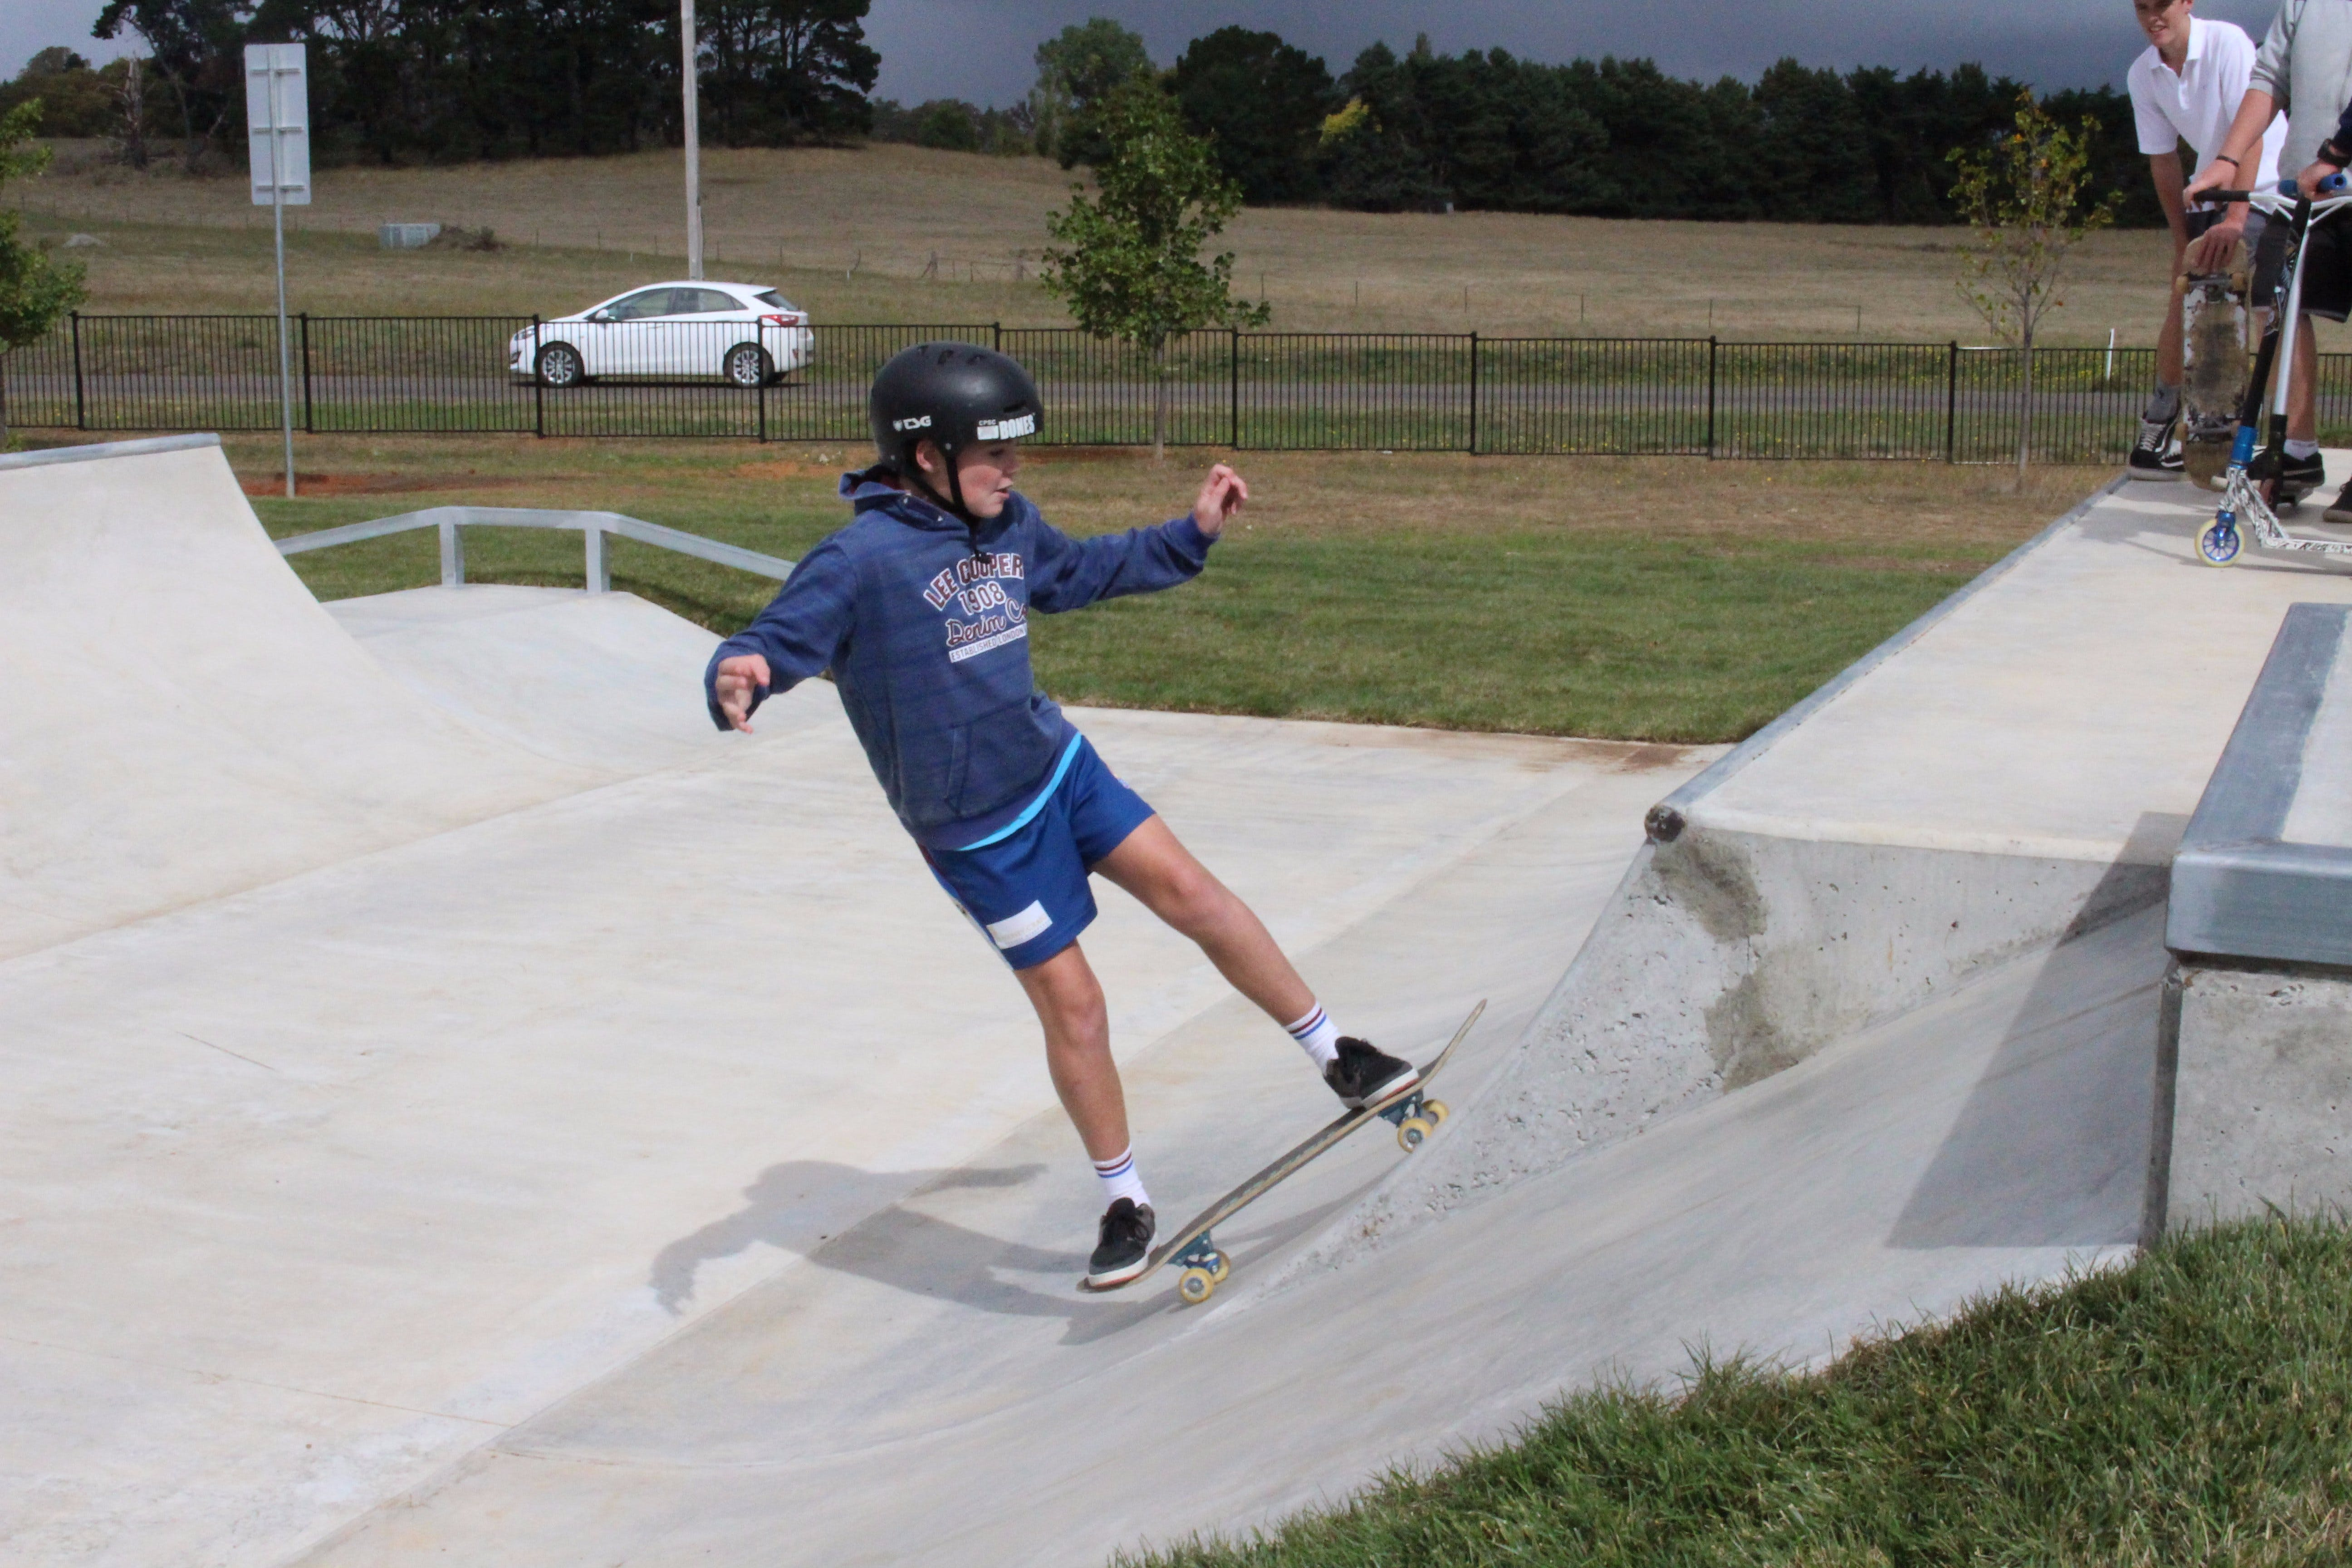 Crookwell Skate Park - Accommodation in Bendigo